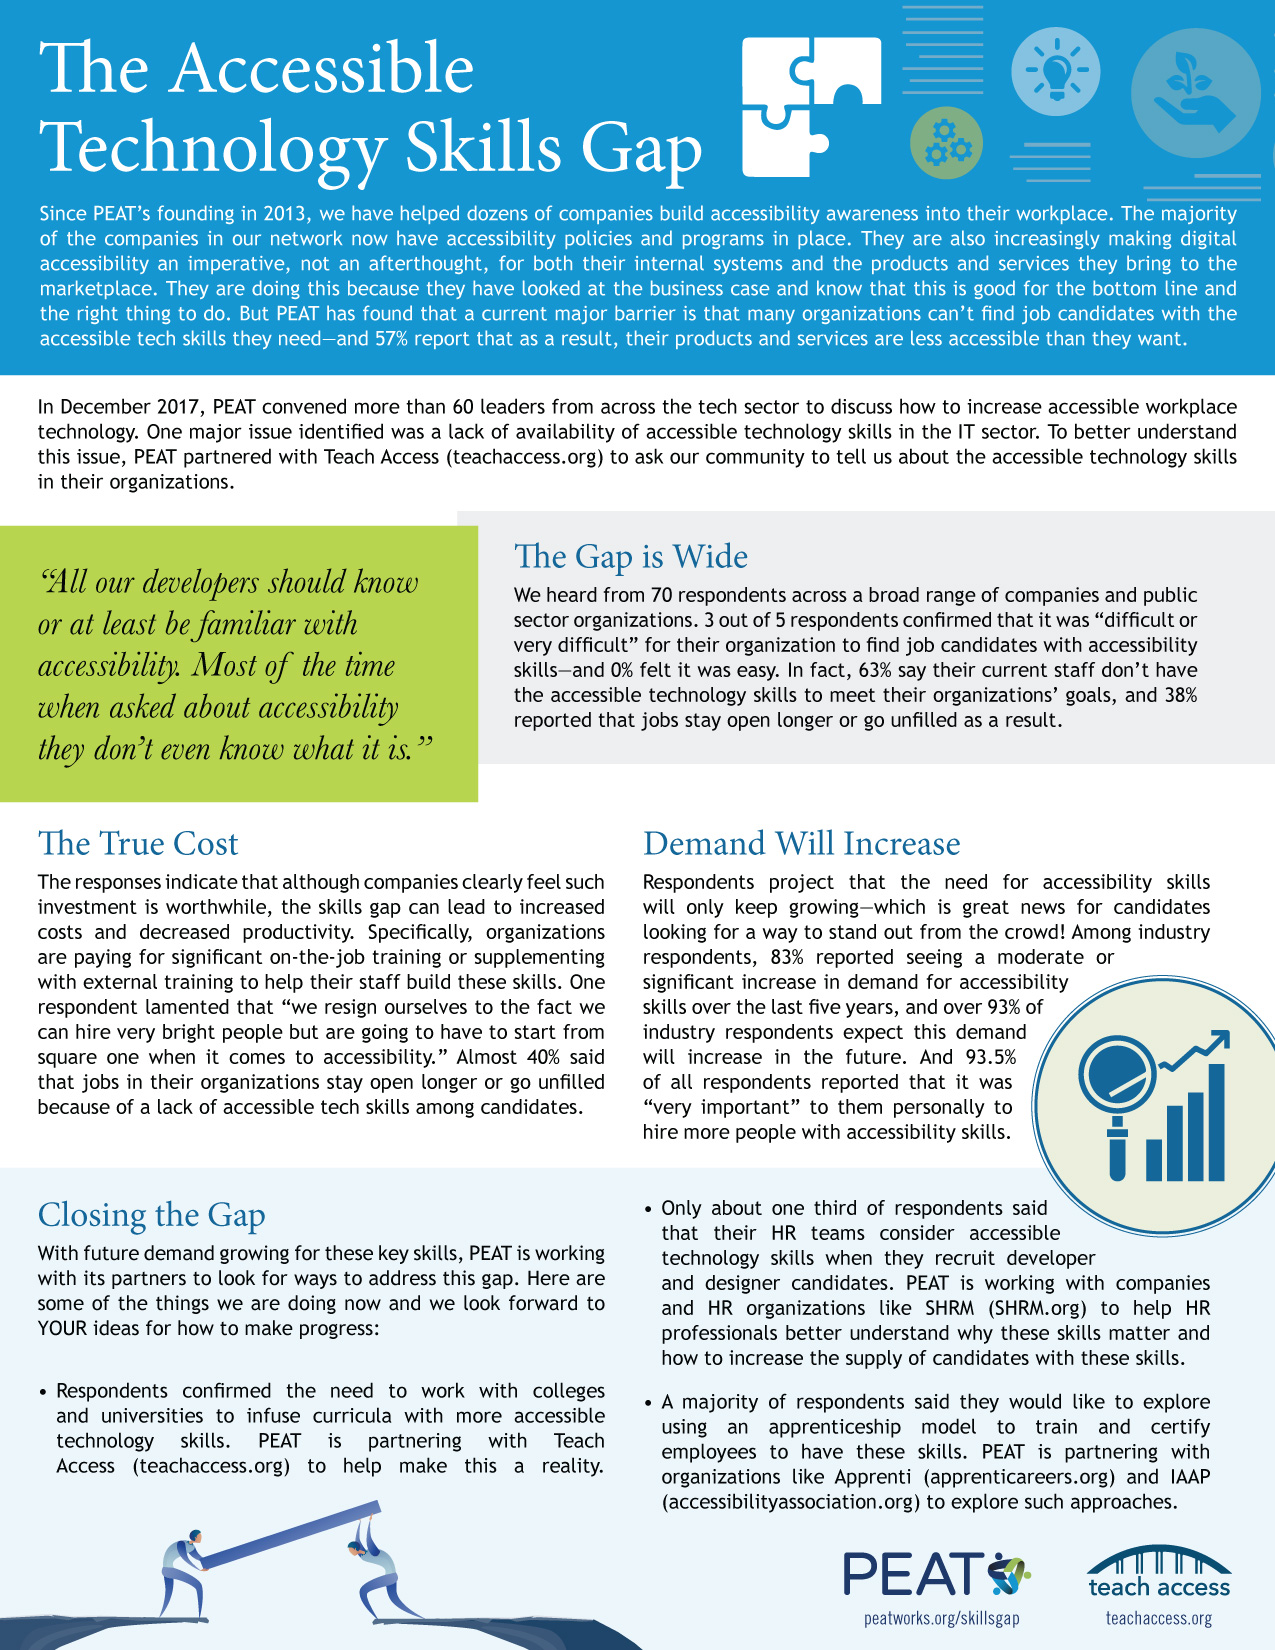 Accessible Skills Gap Infographic - Page 2. Click to view larger version.